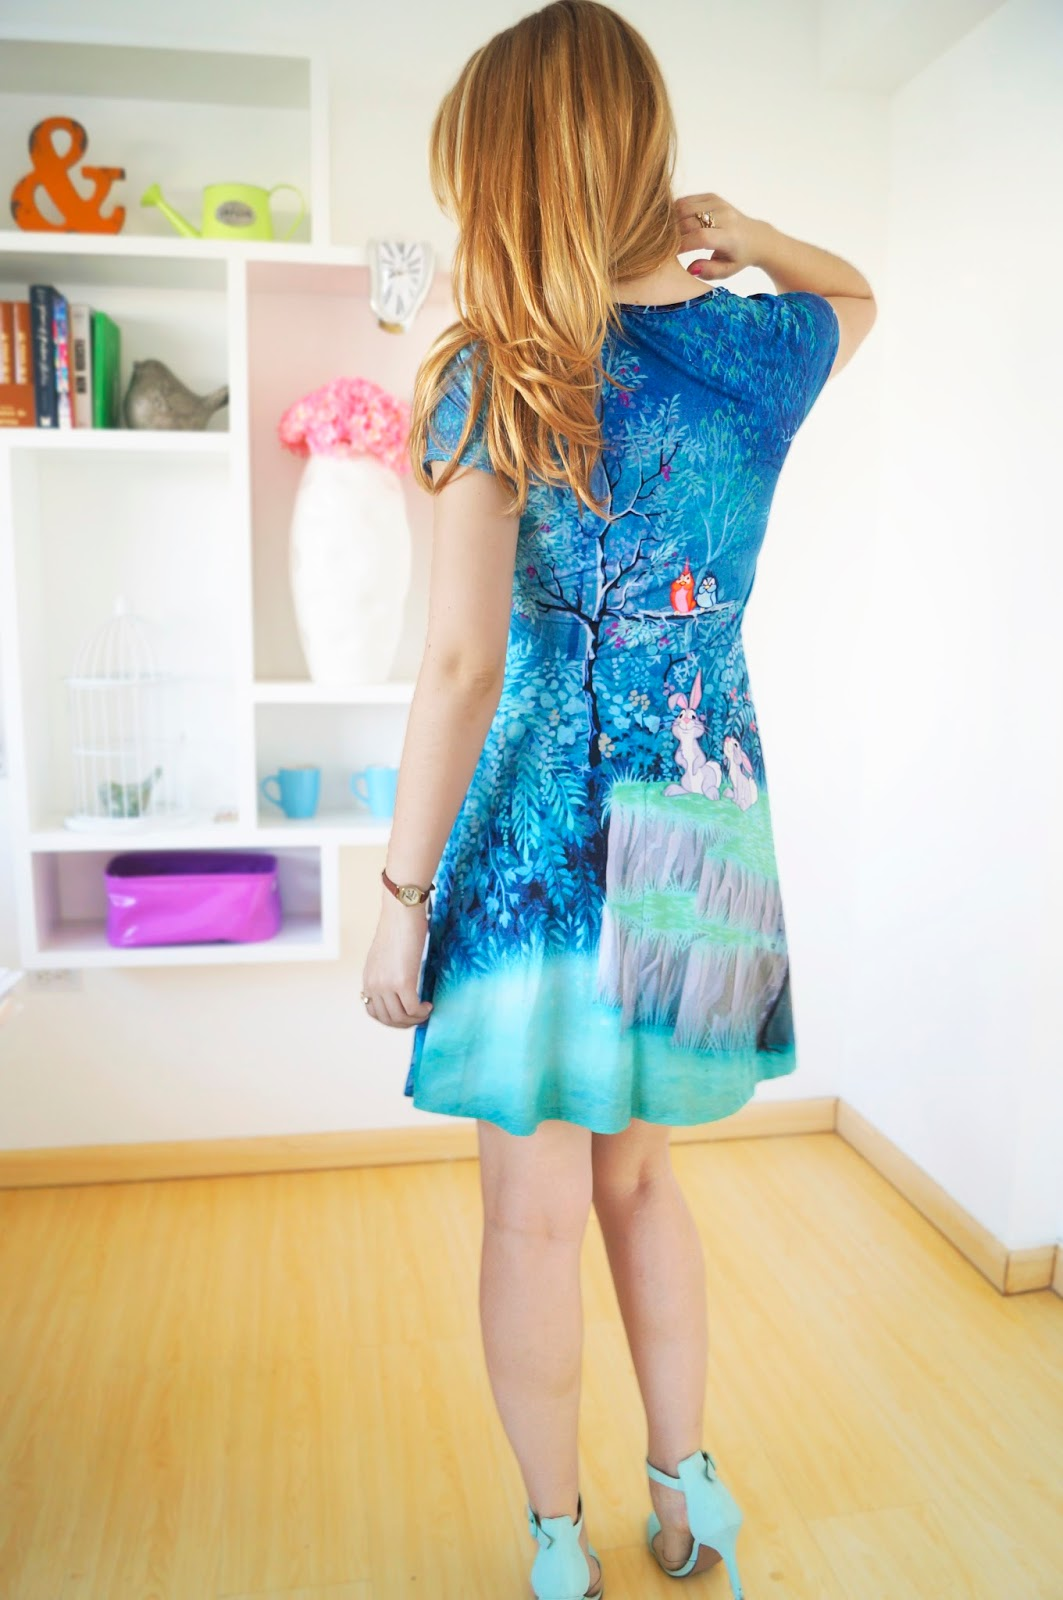 Disney Fashion, Sleeping Beauty Dress